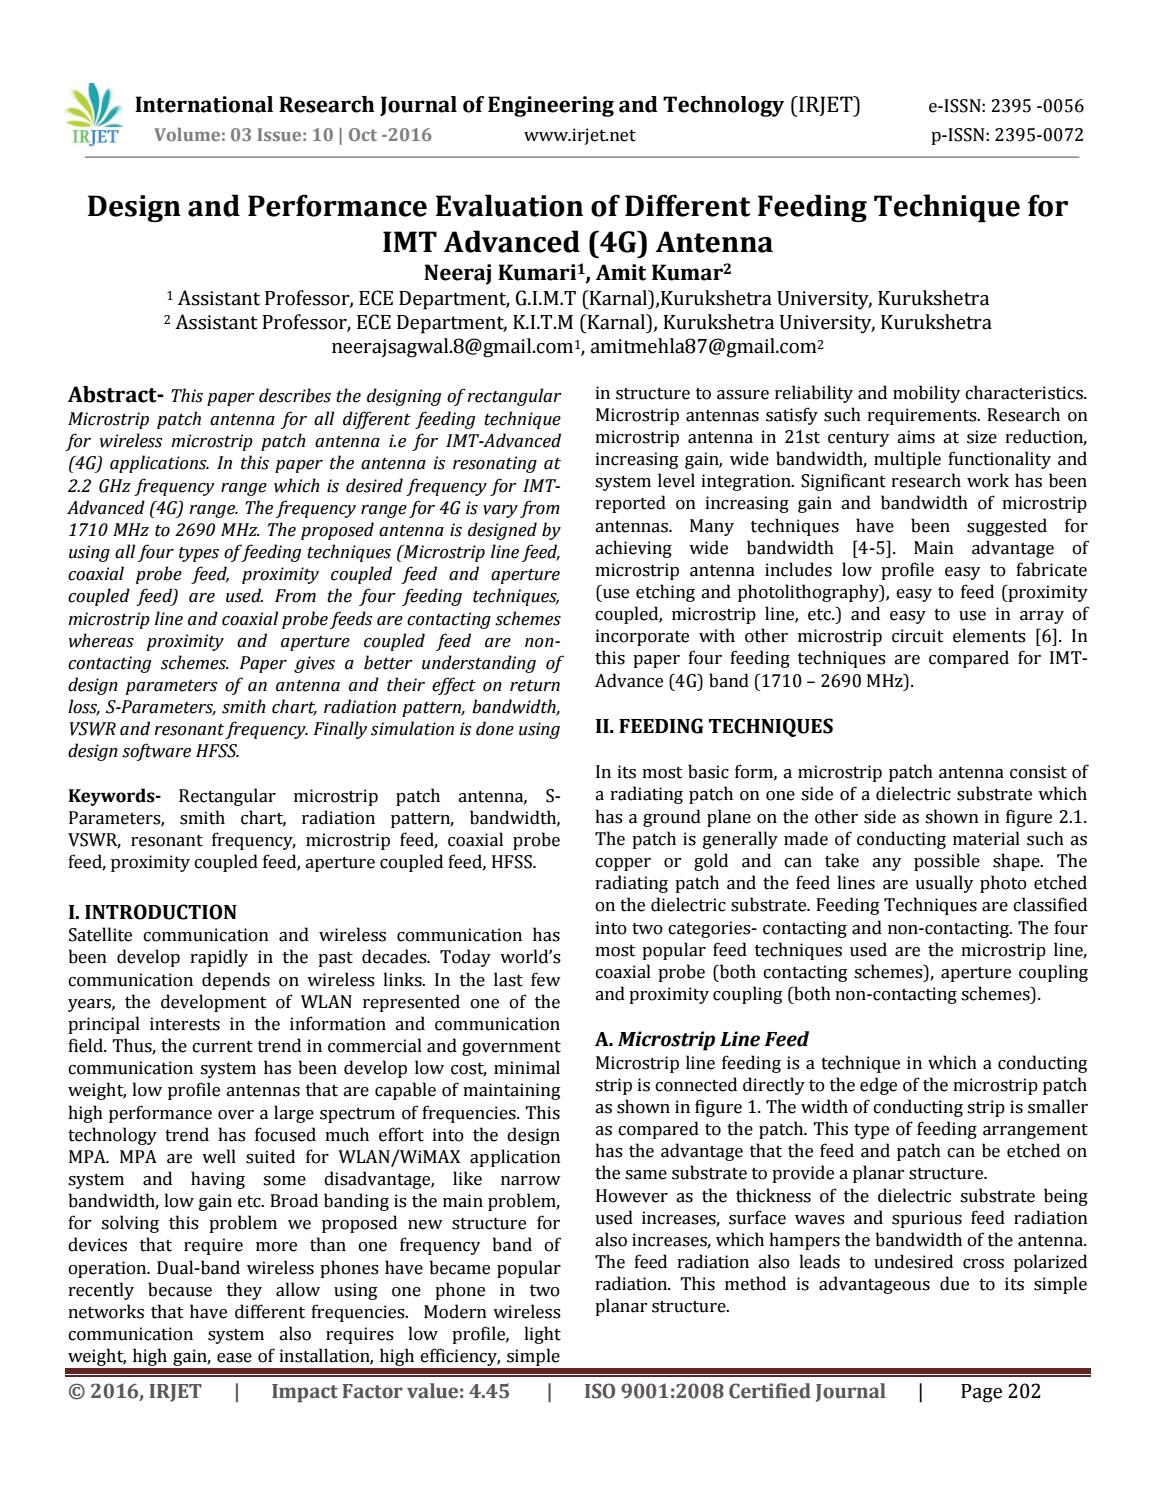 Design and Performance Evaluation of Different Feeding